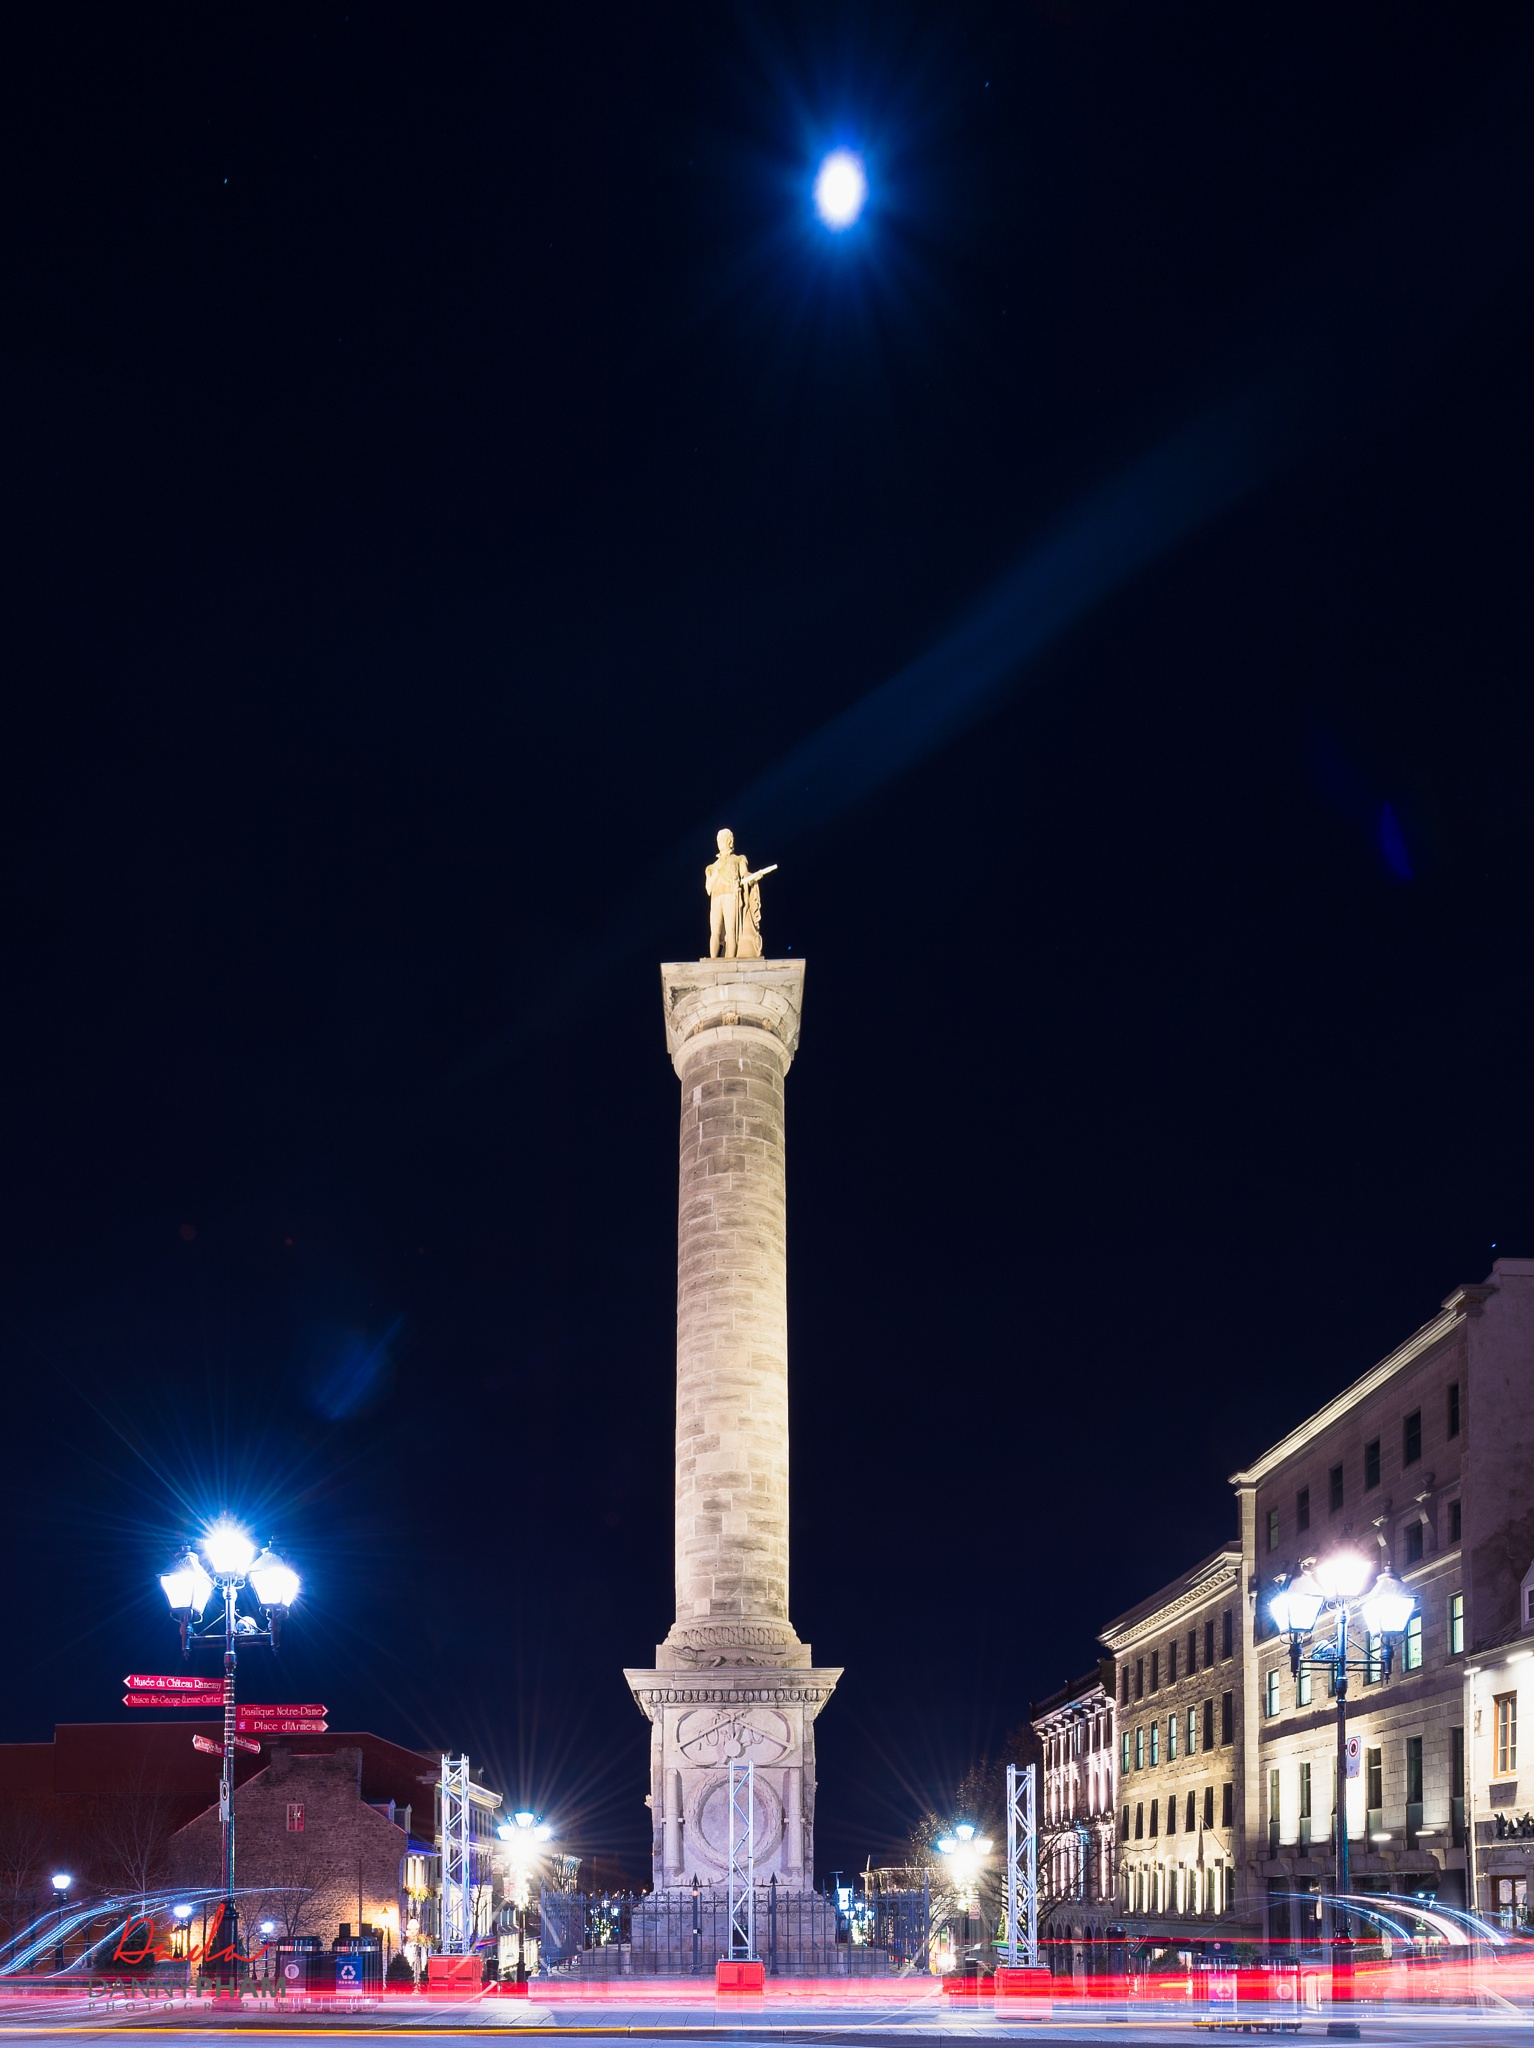 Old Montreal, Canada - Full Moon above! Dec. 25, 2015 by Danny Pham